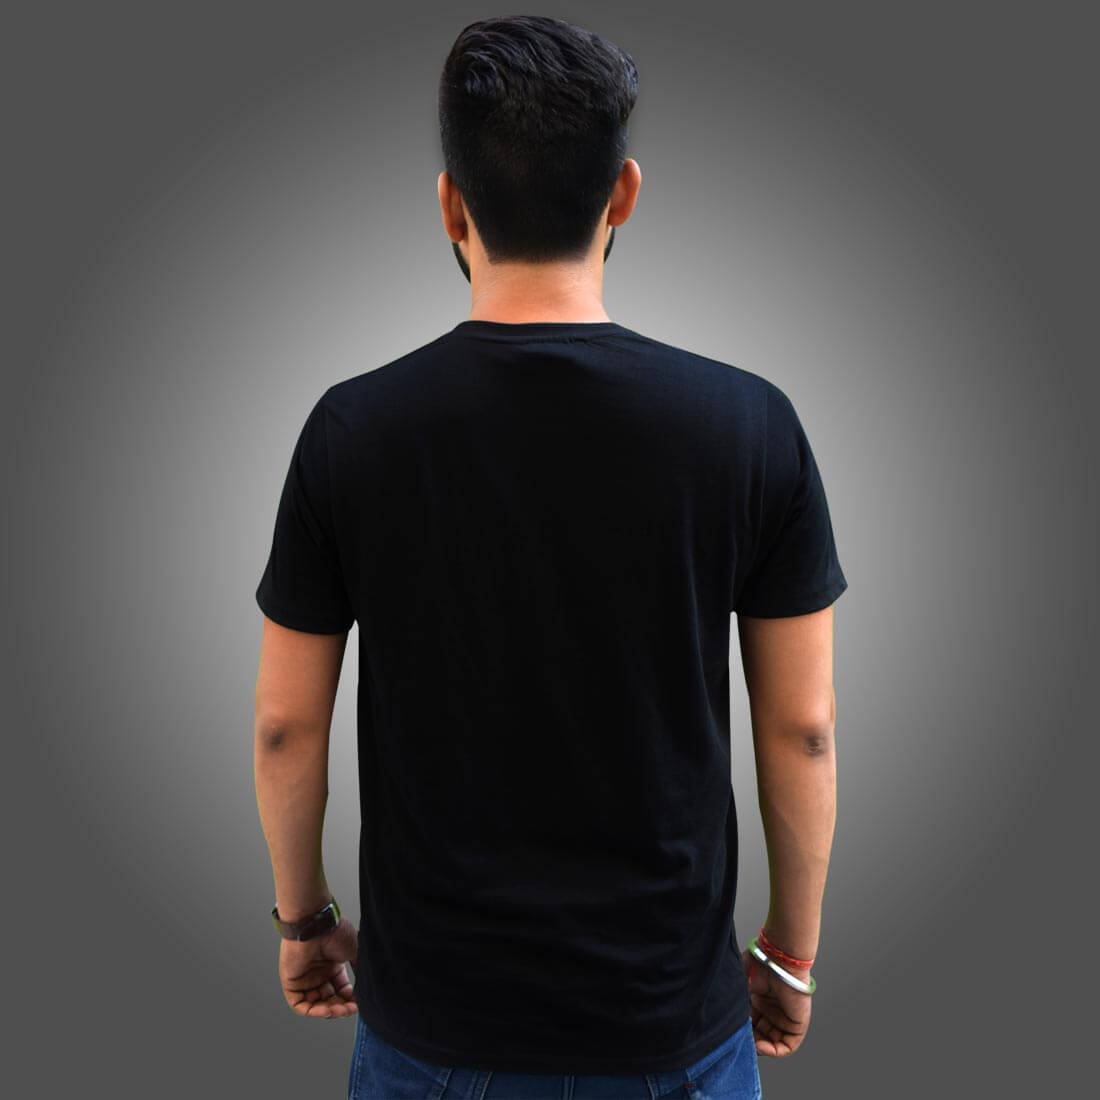 Bholenath with Parvati Images Printed Black T Shirt Front and Back